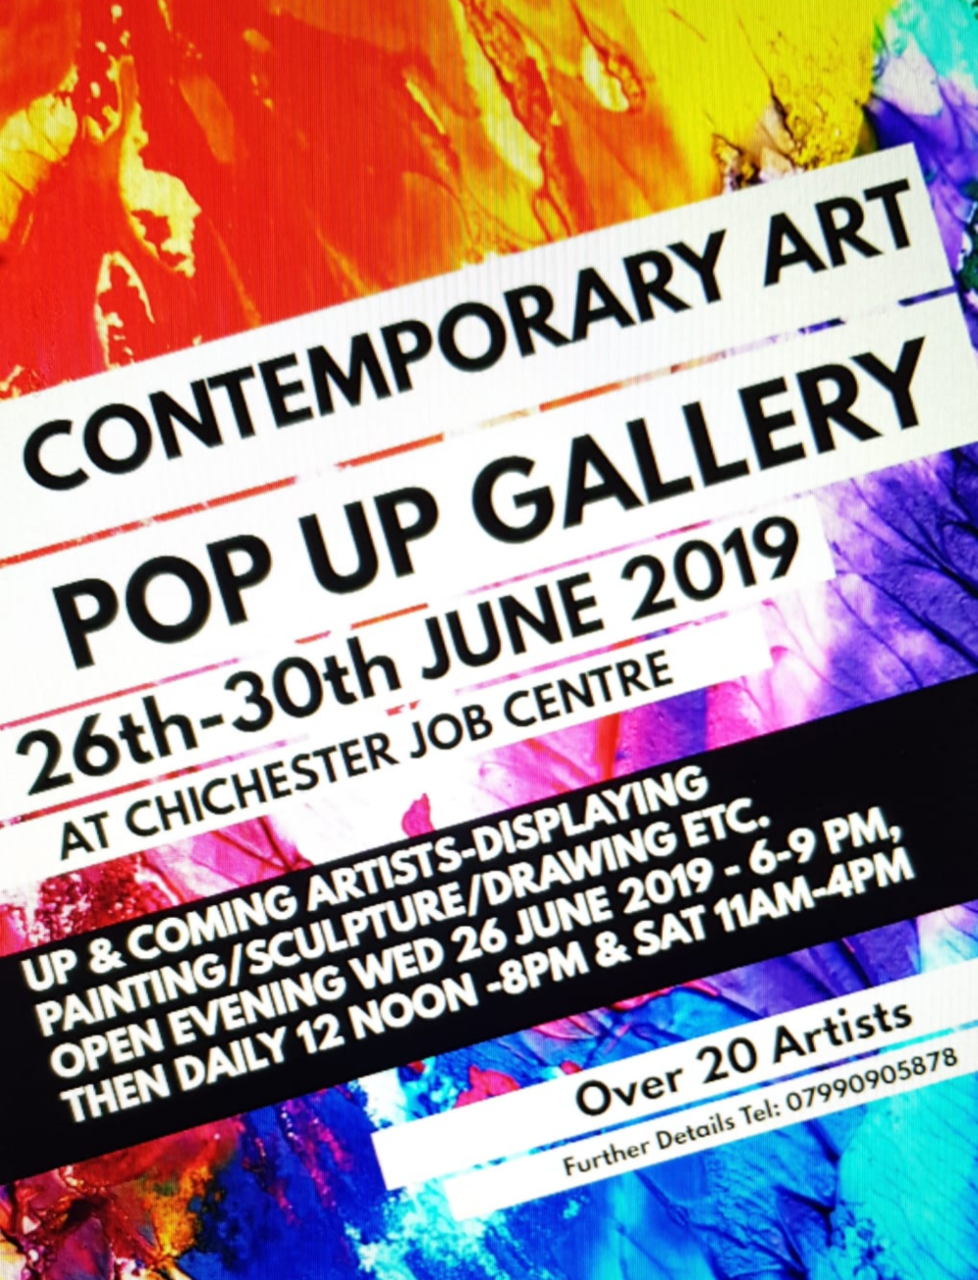 Pop up gallery flyer